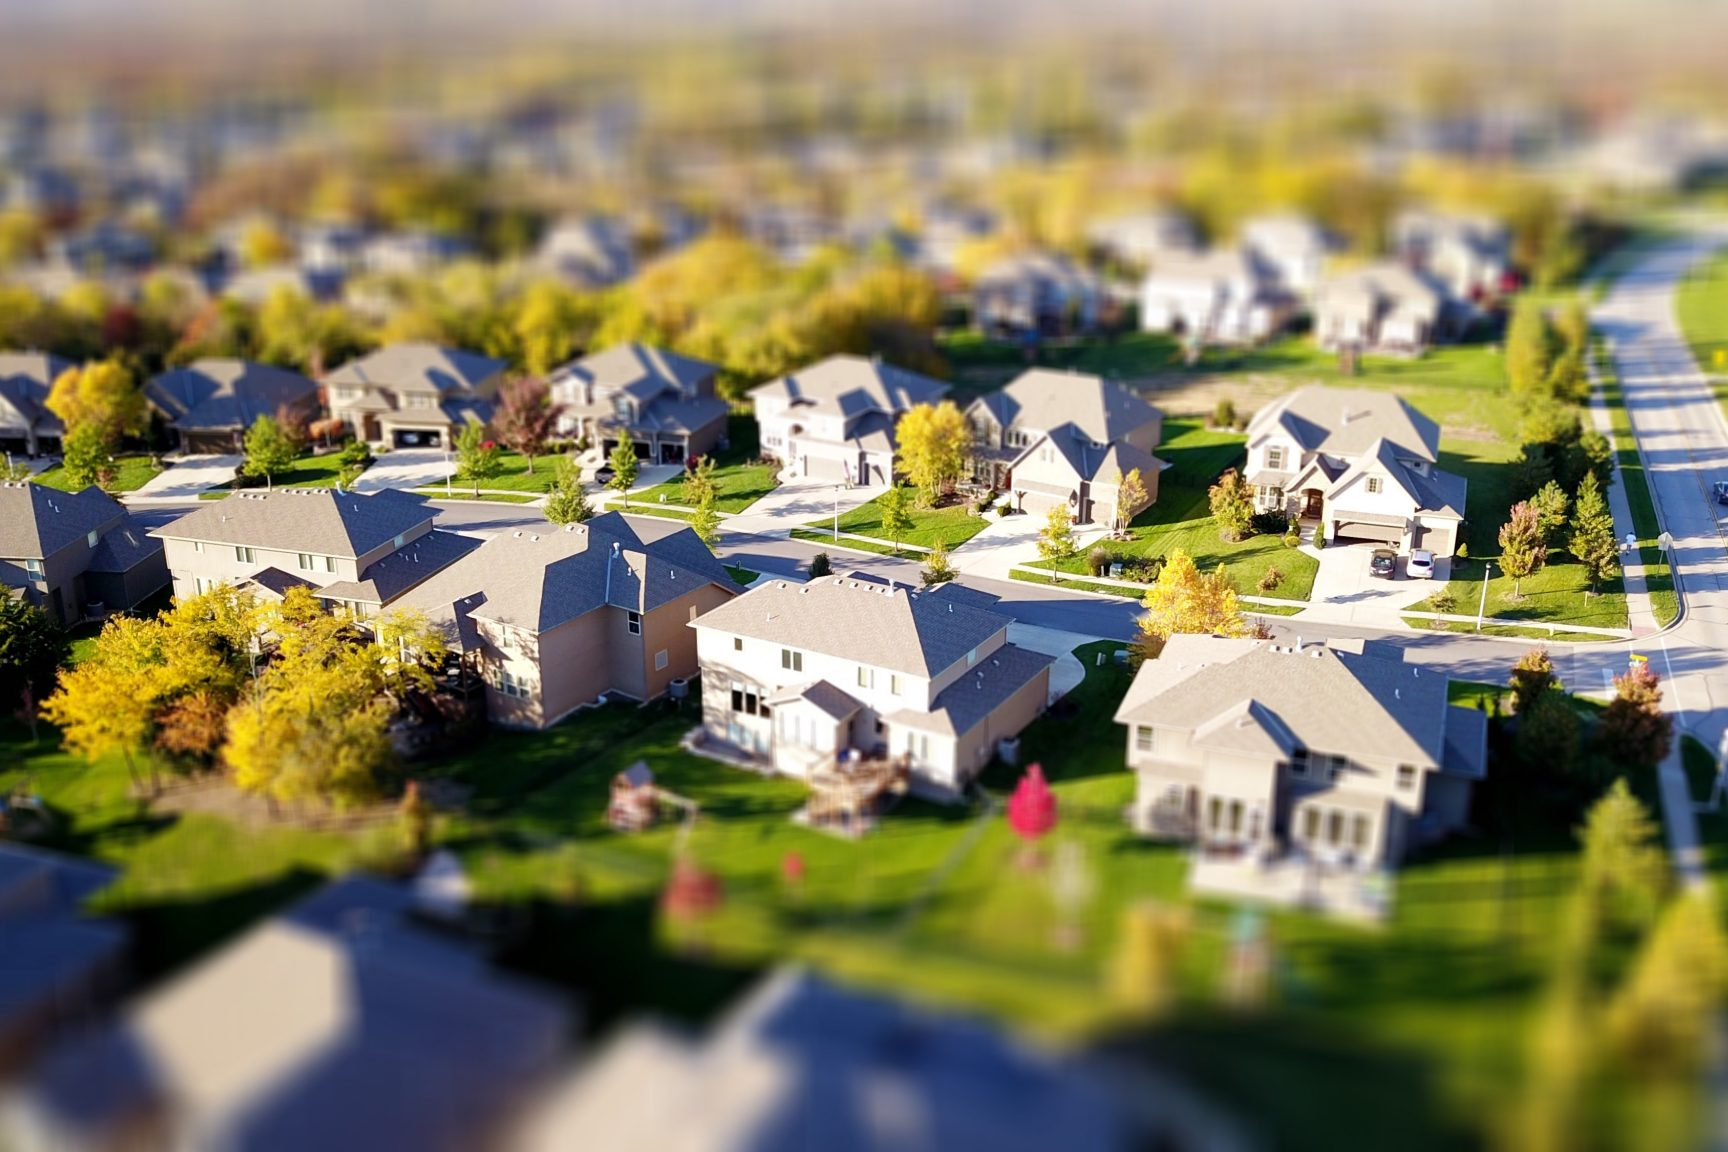 Model of a village or town. Visual representation of a neighborhood plan.